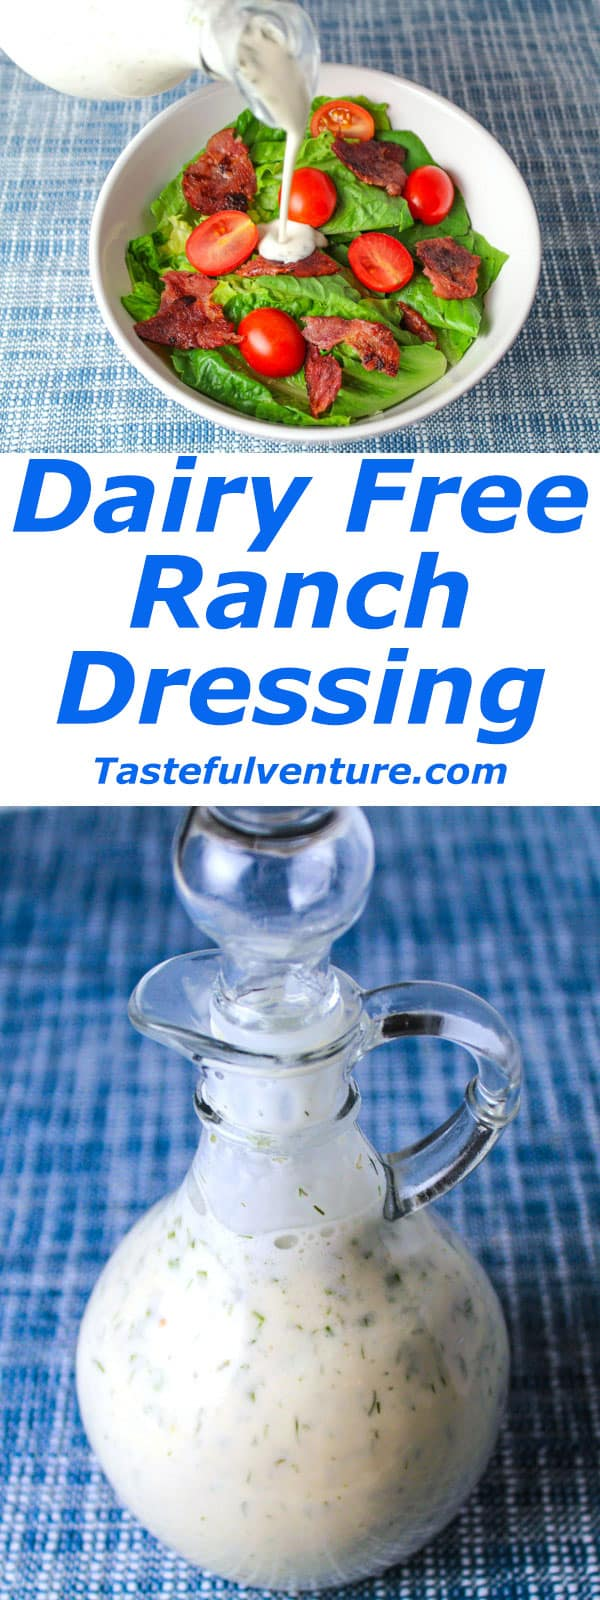 This Dairy Free Ranch Dressing is so easy to make, it's loaded with Ranch flavor without all of the Calories or Fat, plus it's Gluten free! | Tastefulventure.com